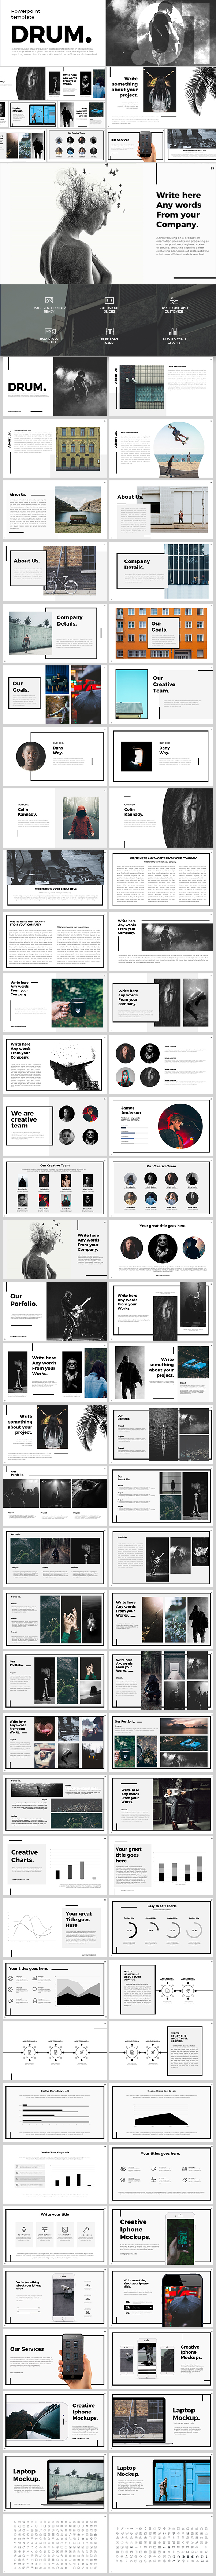 Drum Powerpoint Template - PowerPoint Templates Presentation Templates